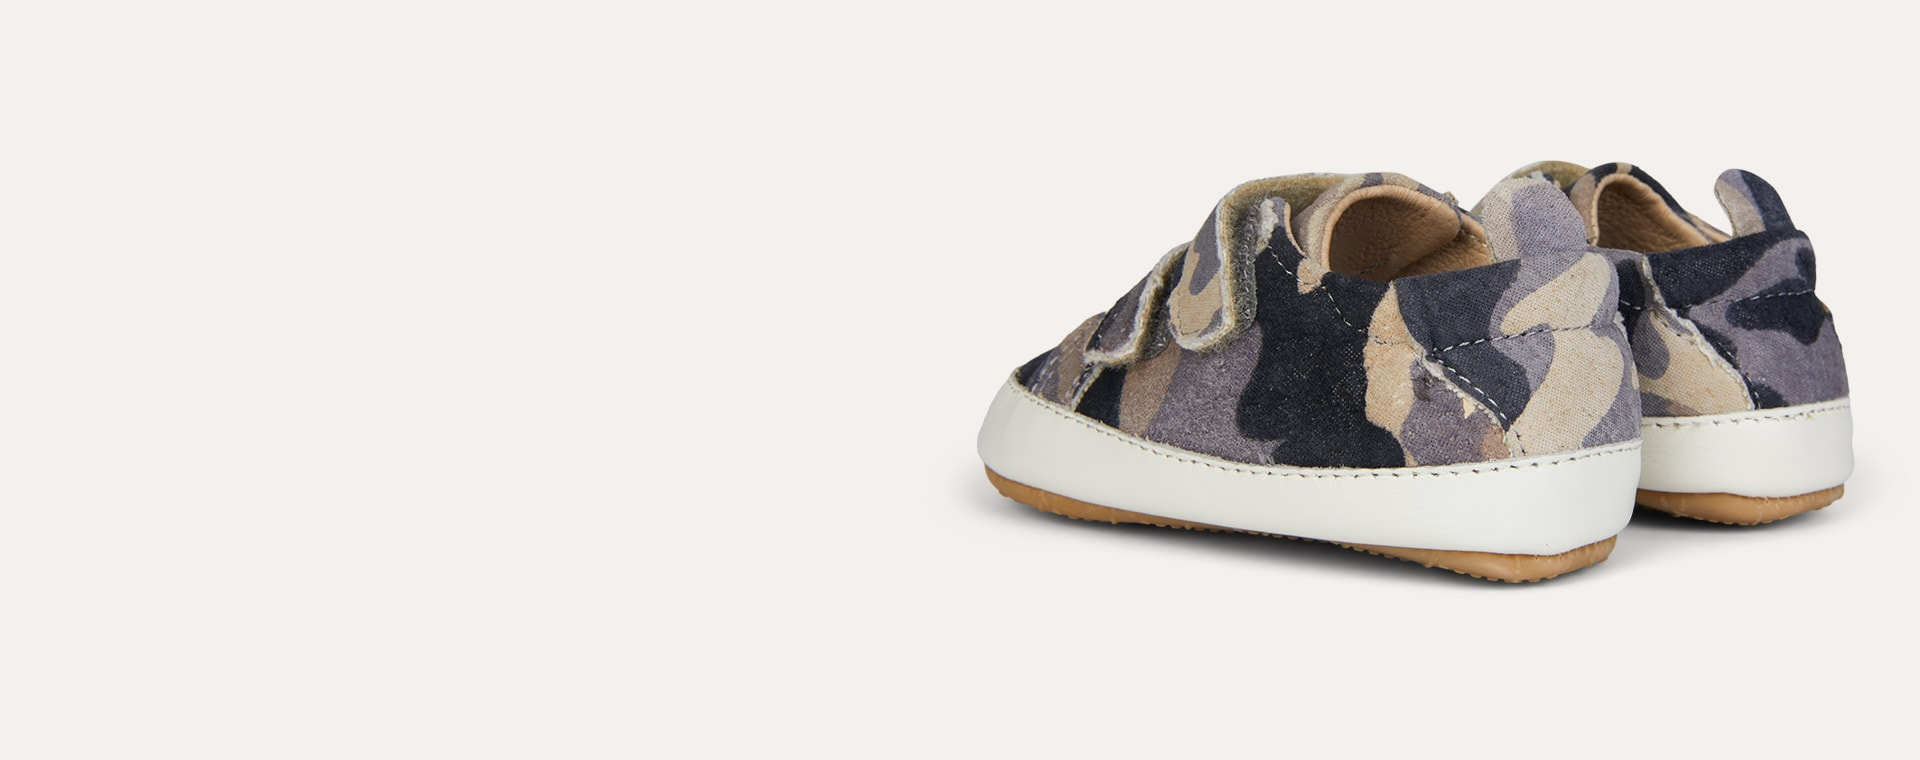 Grey Camo old soles Bambini Market Soft Sole Trainer